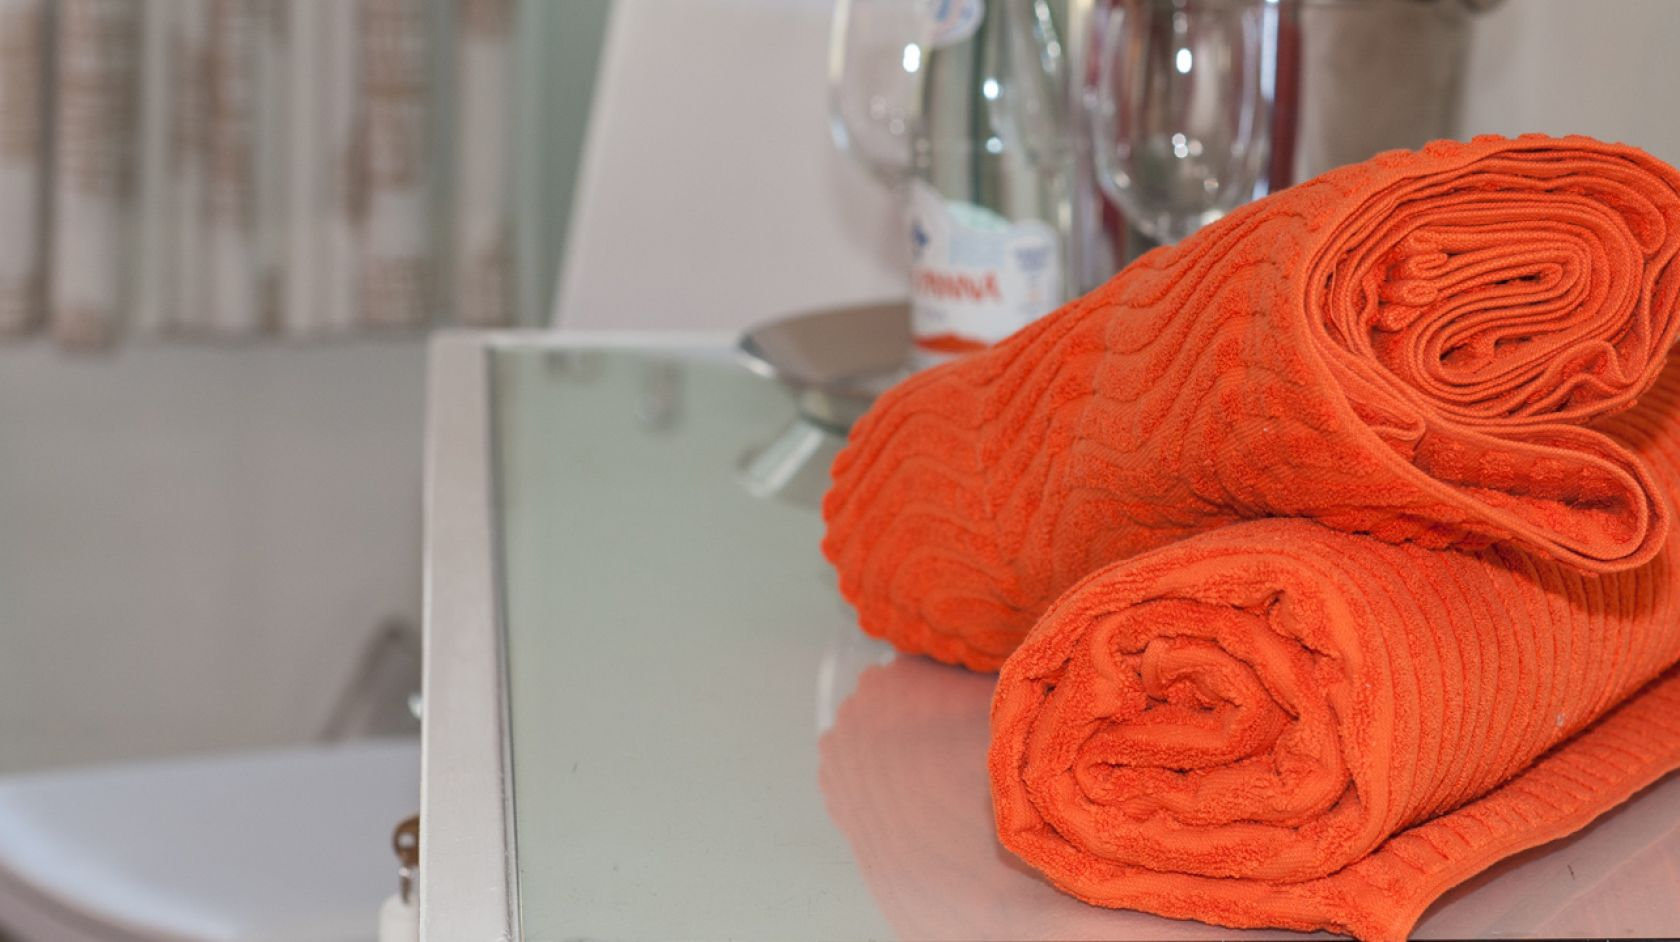 orange towels in a bathroom